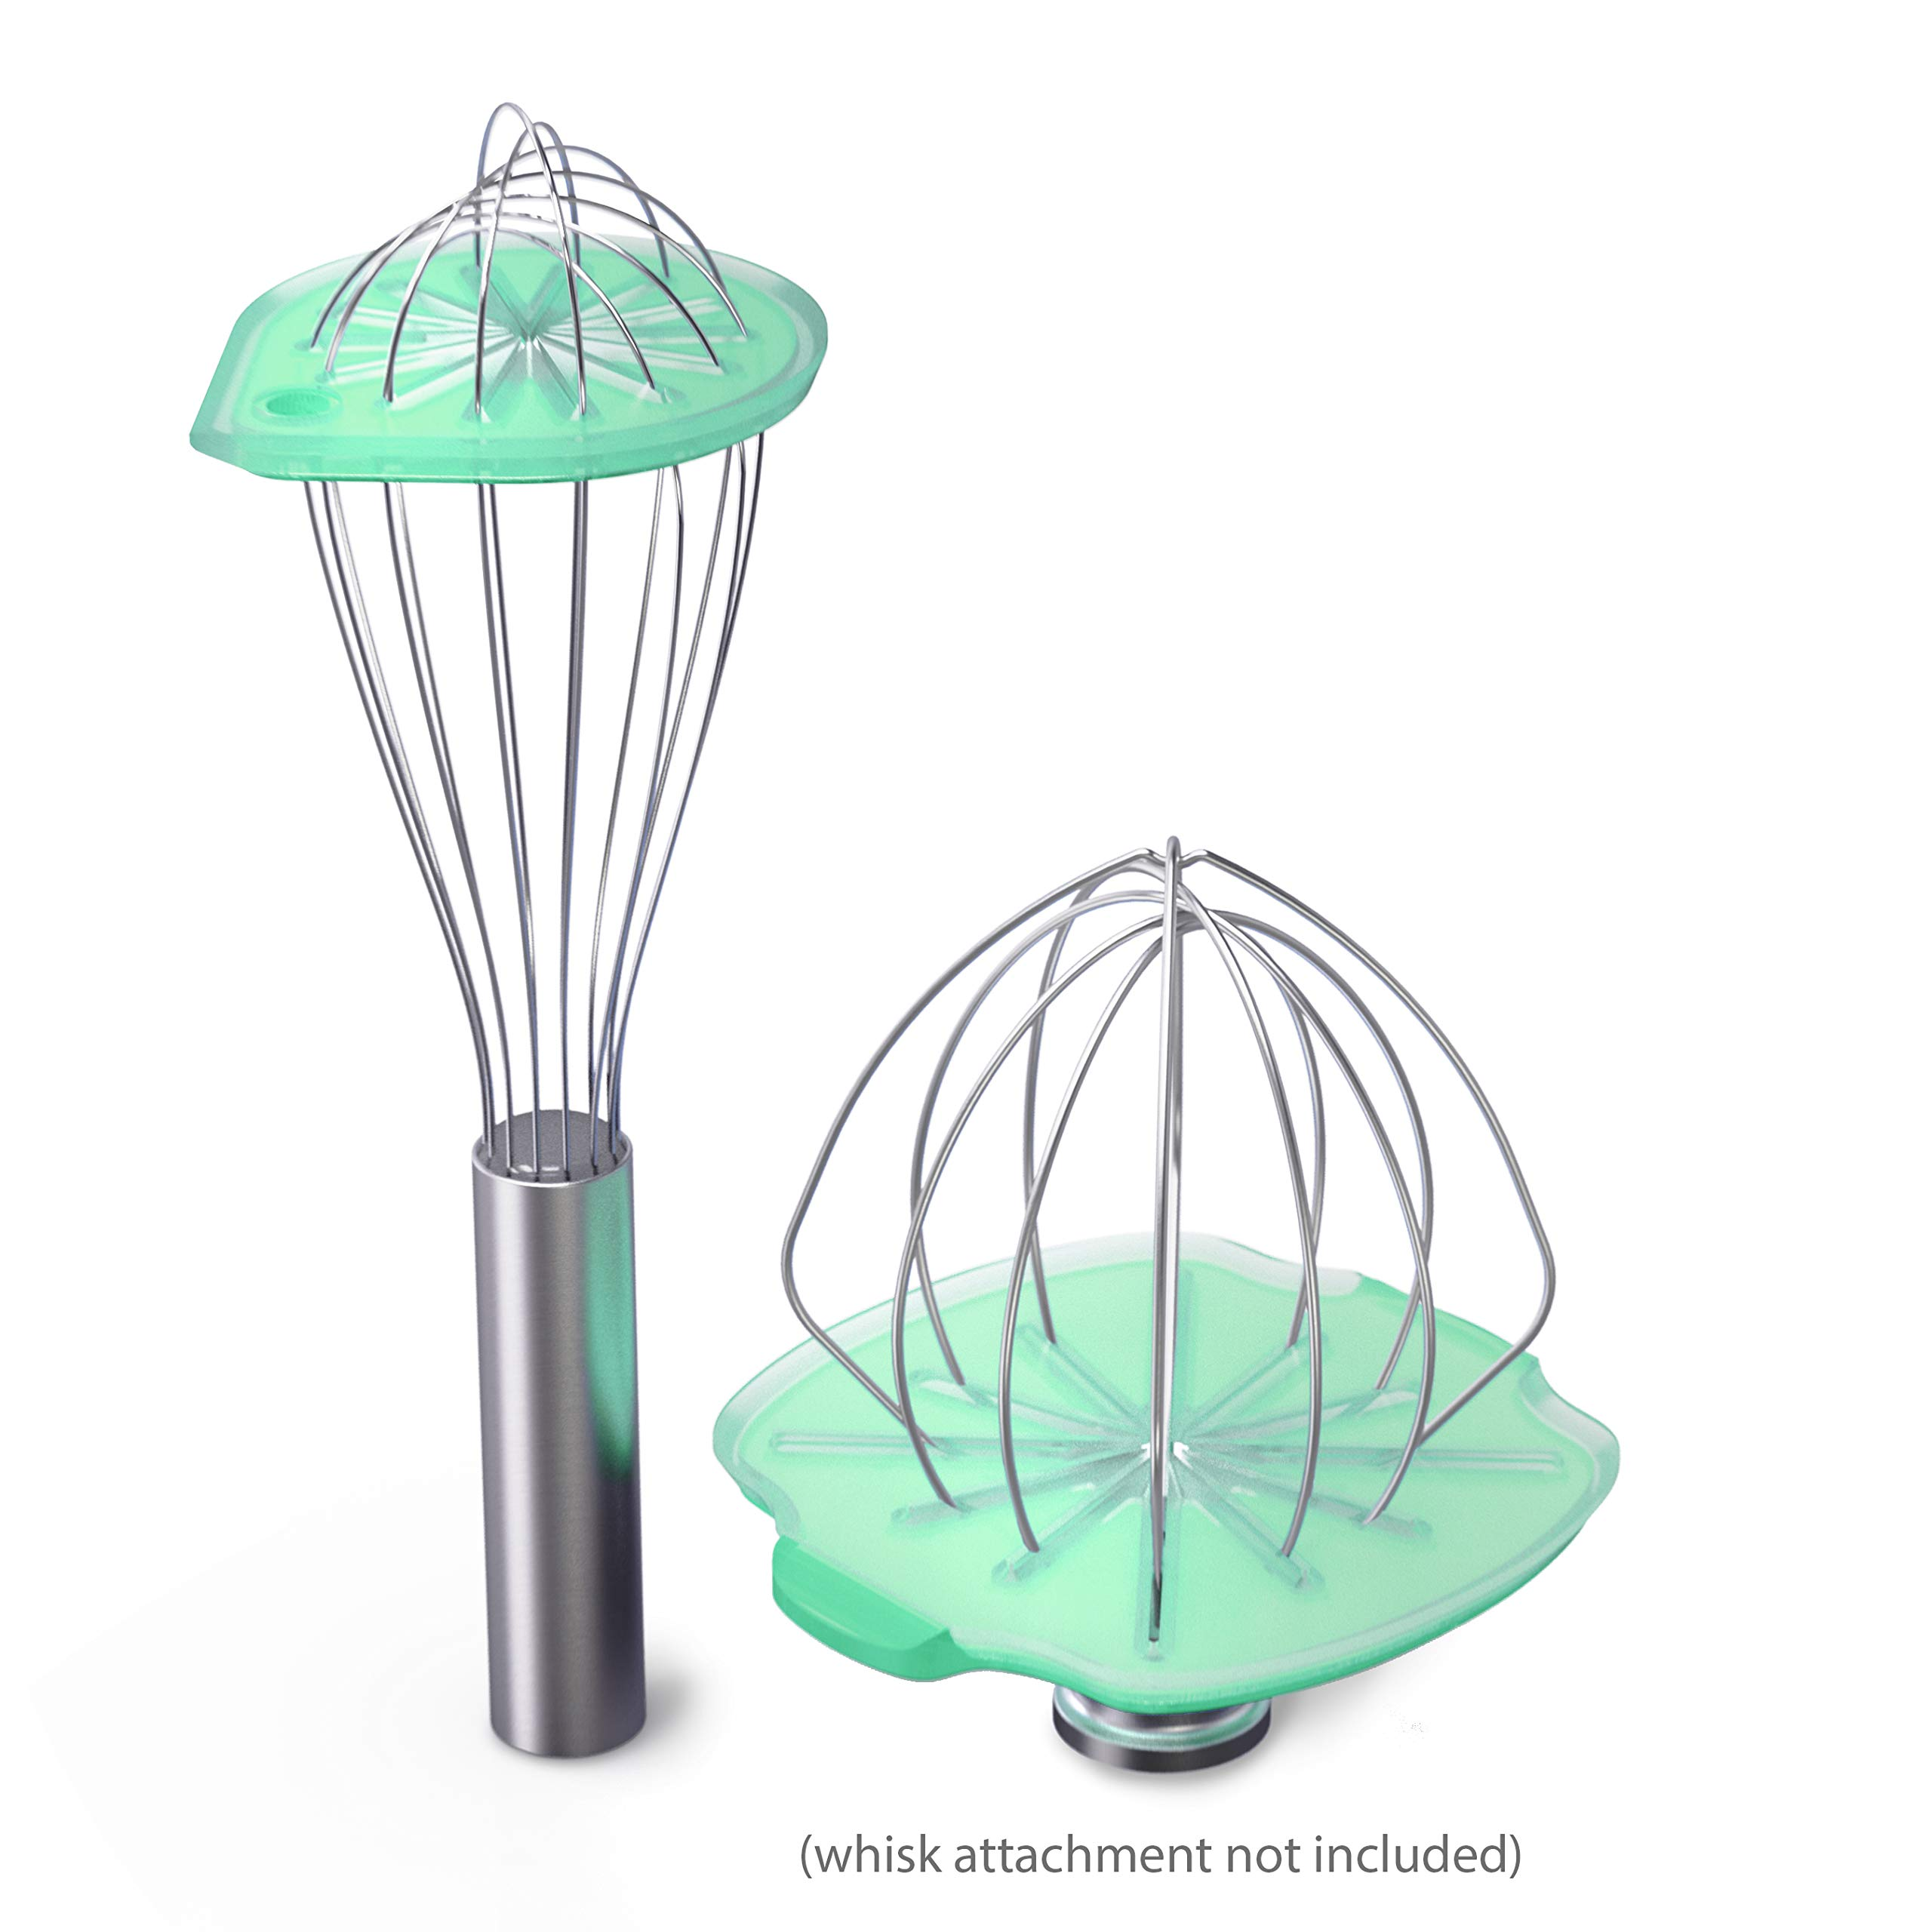 Whisk Wiper 3pc Trio - Mix Without The Mess - Revolutionary Kitchen Accessory - A Great Gift - Includes Whisk Wiper PRO for Tilt-Head Stand Mixer (4.5 & 5qt), Whisk Wiper set (Color: Aquamarine)